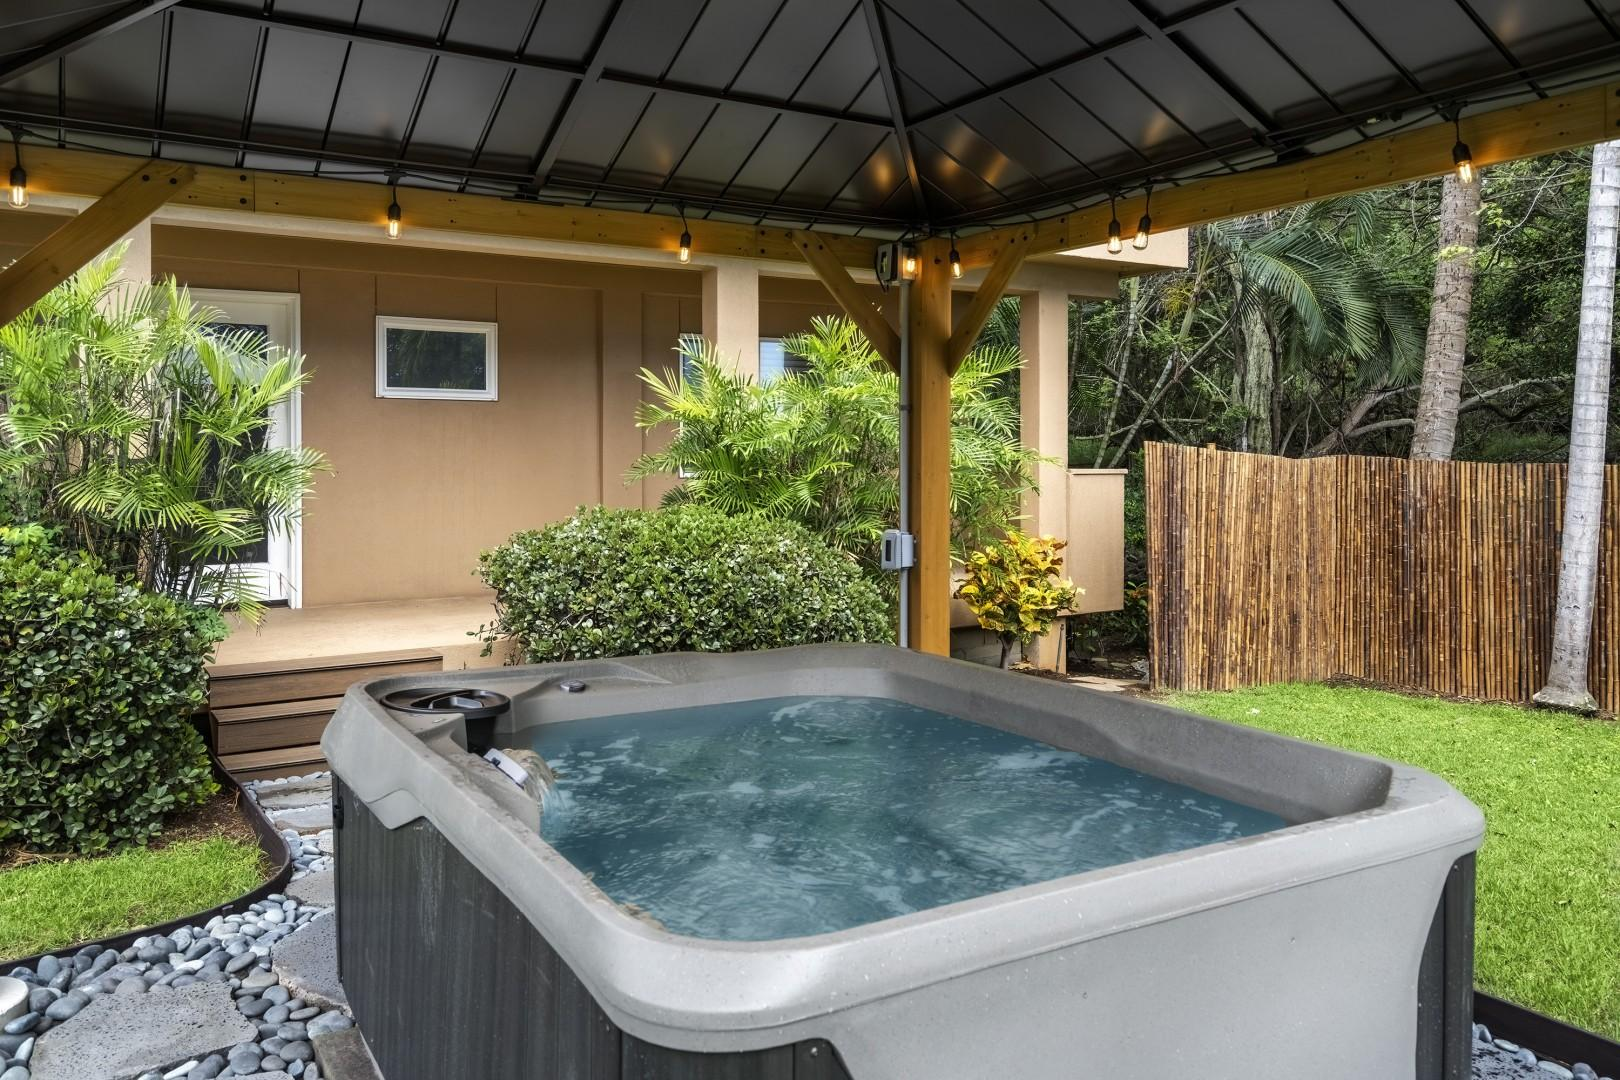 Hot tub in the front of the home!